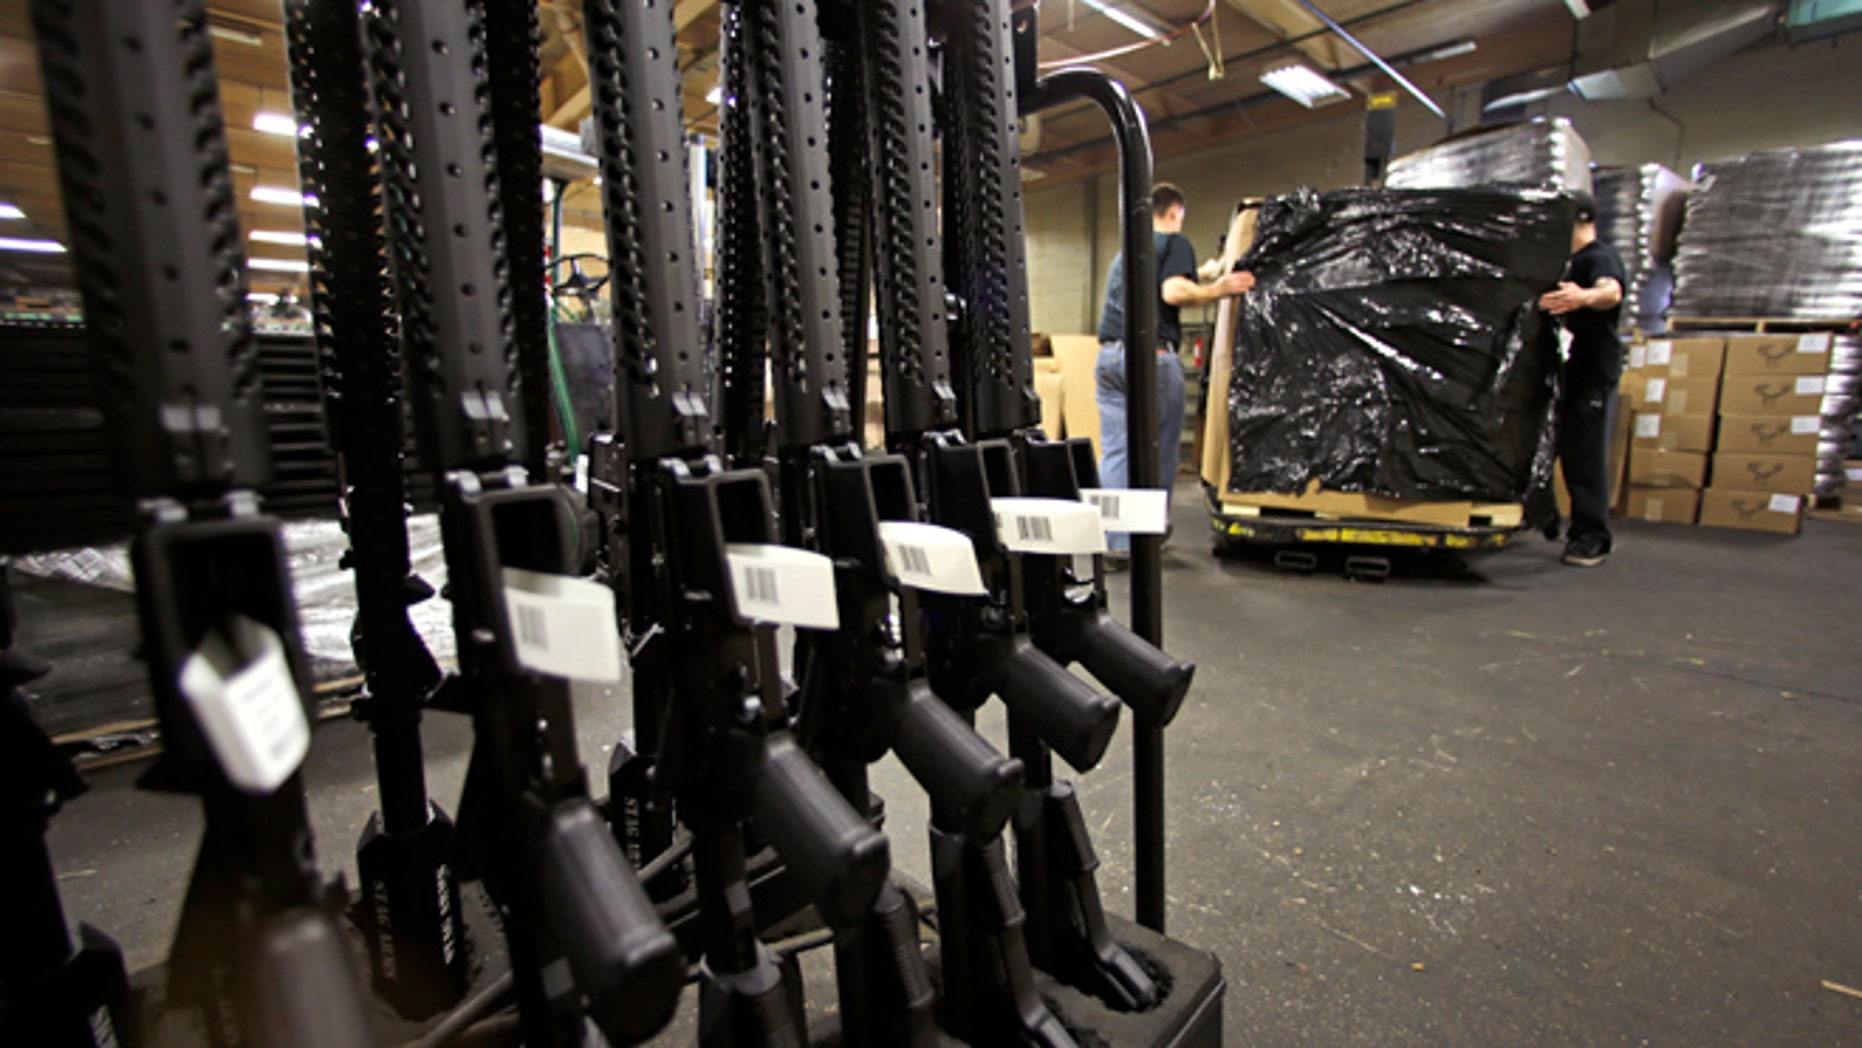 April 10, 2013: A rack of AR-15 rifles stand to be individually packaged as workers move a pallet of rifles for shipment at the Stag Arms company in New Britain, Conn.